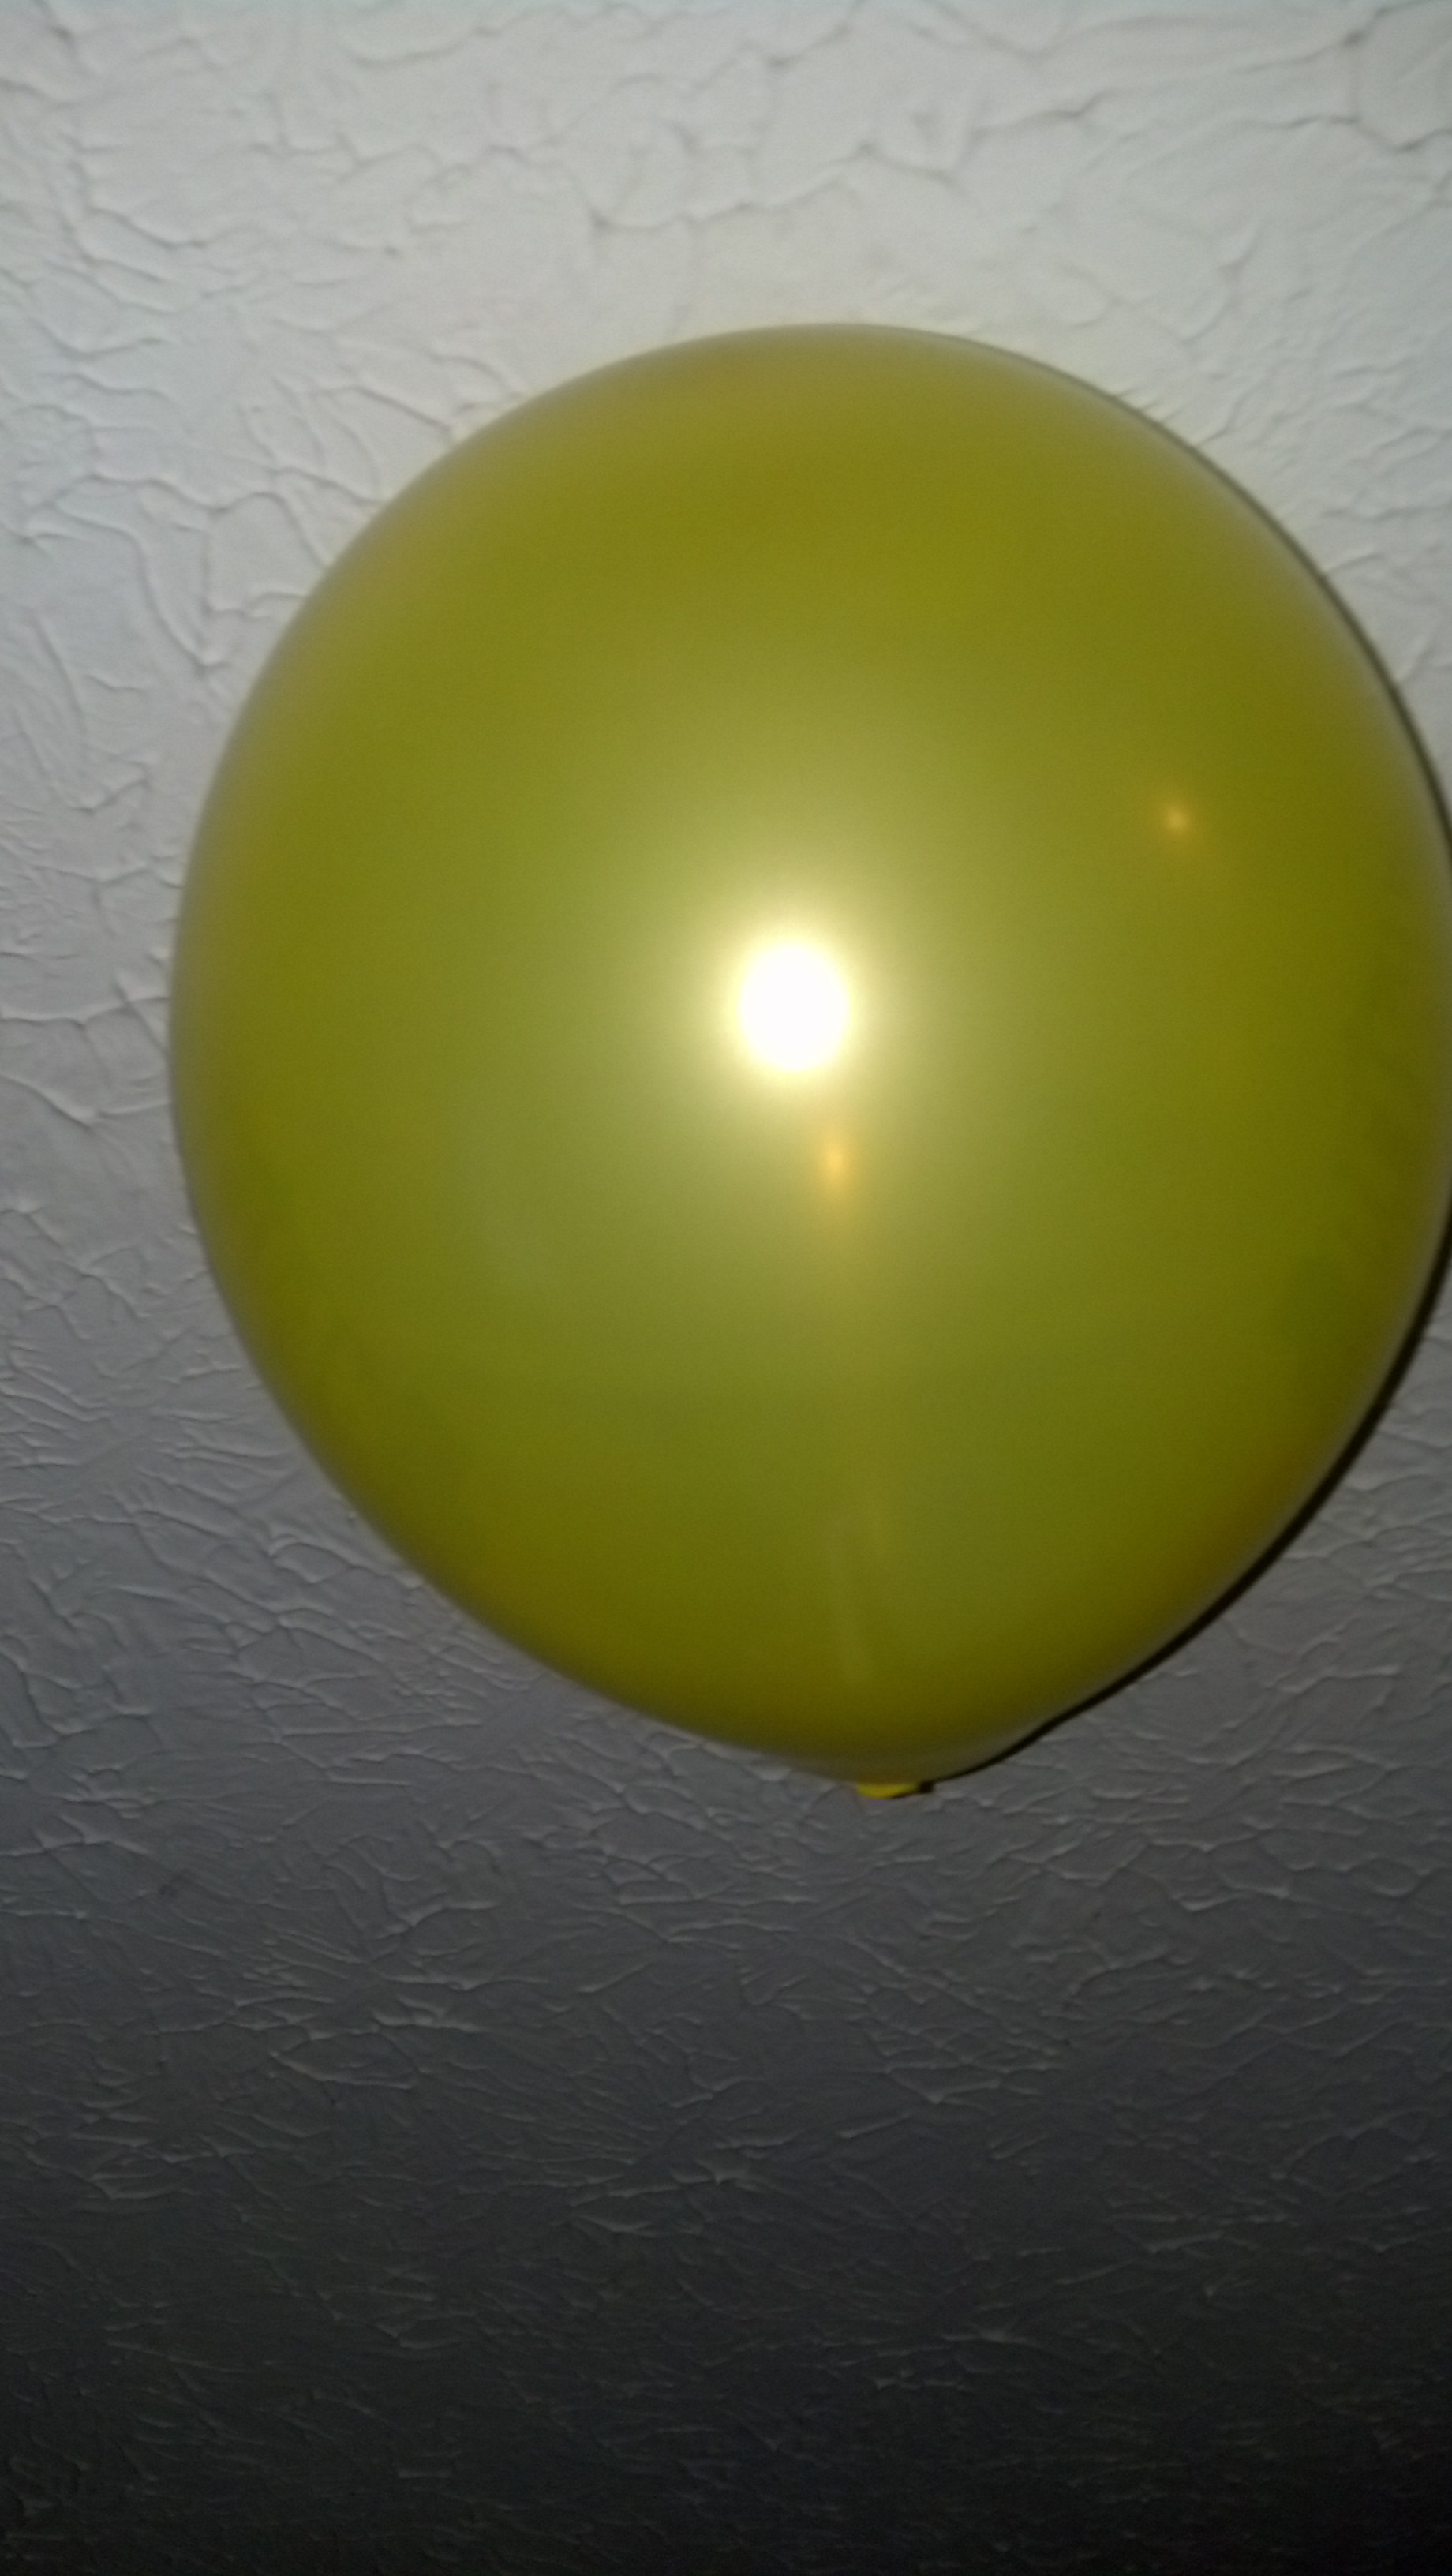 Not Shown: The 6 other balloons floating on the ceiling along with this one.